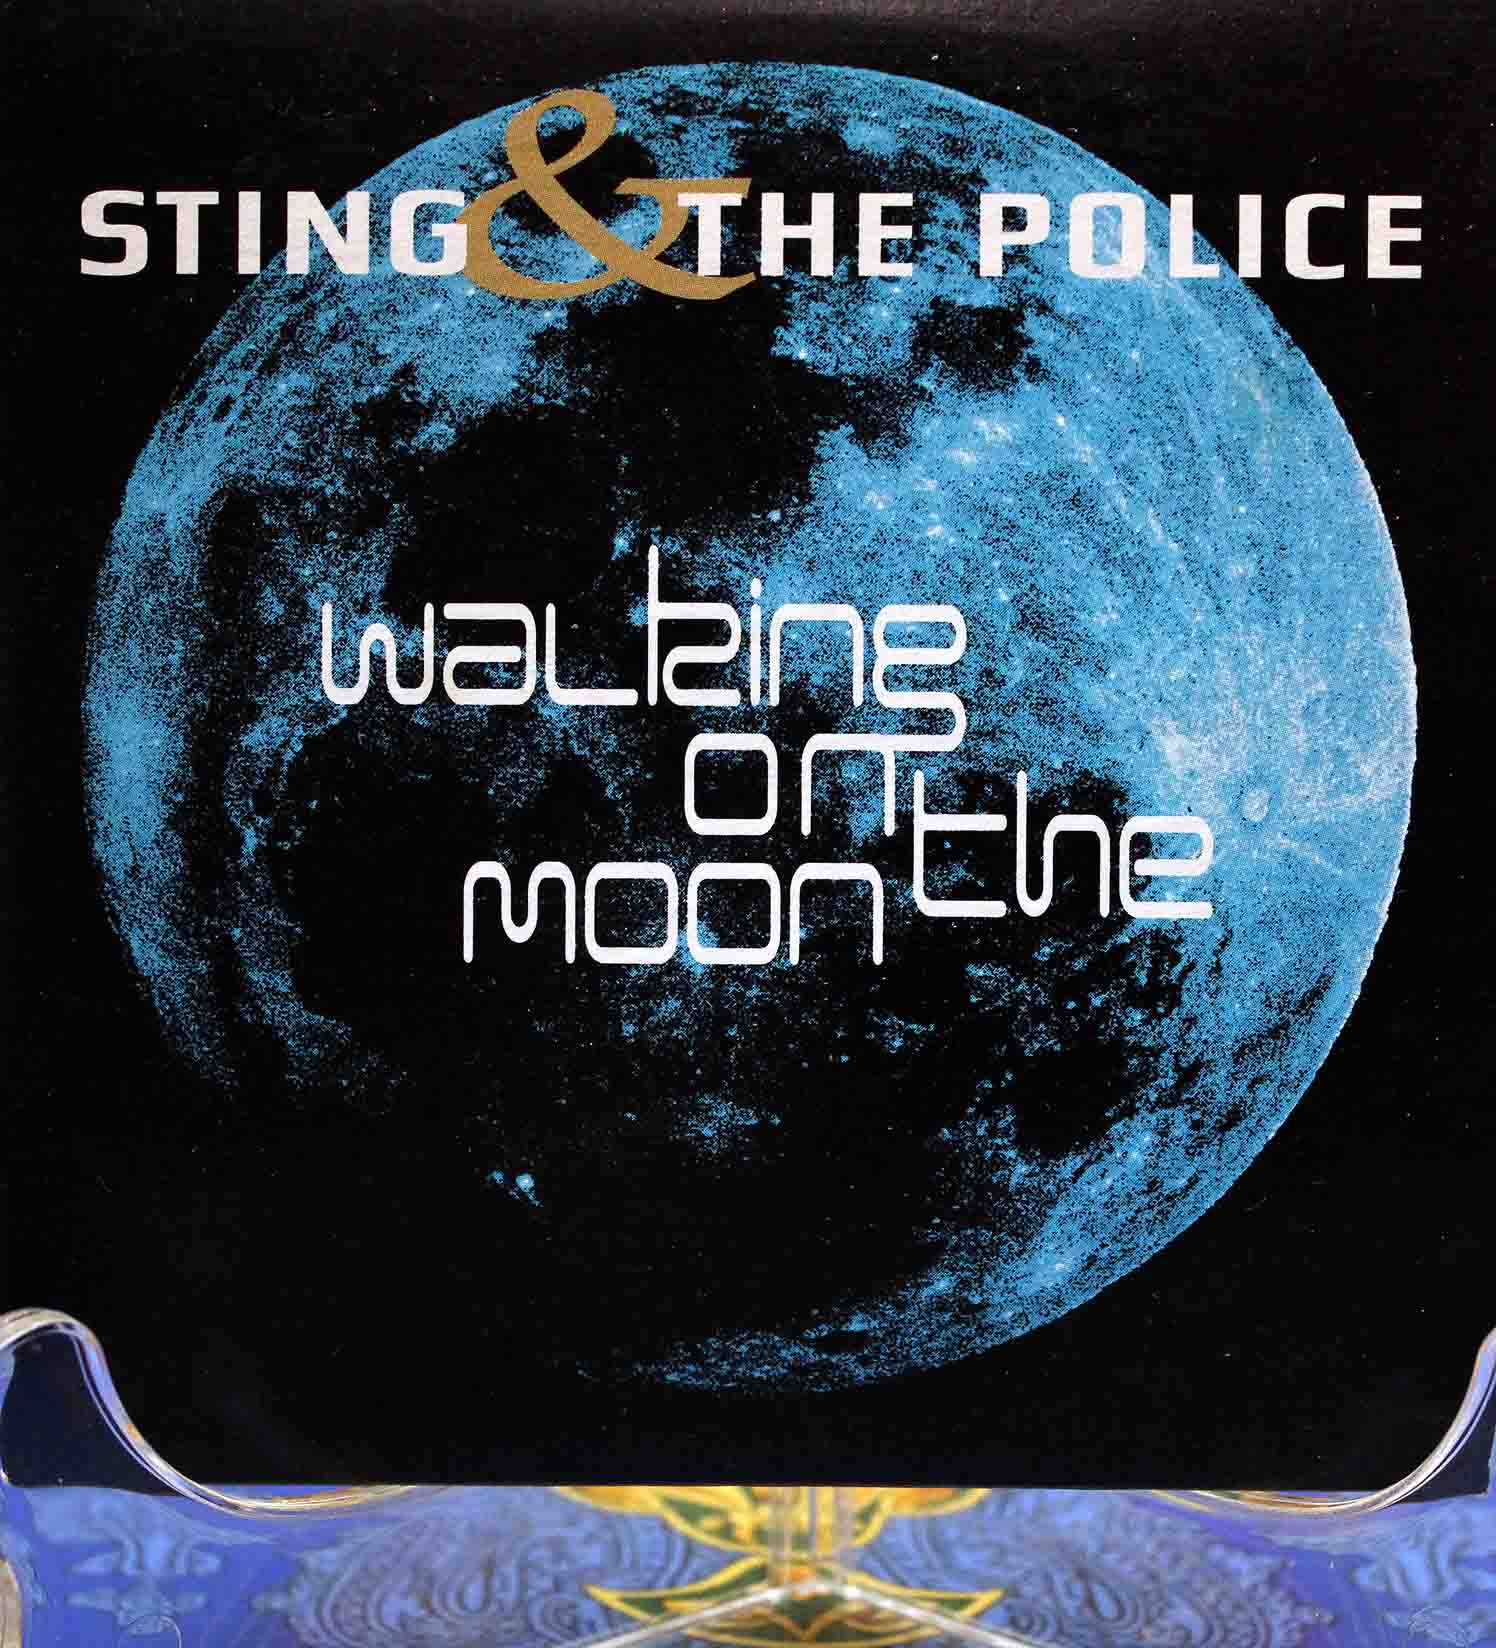 The police walking on the moon